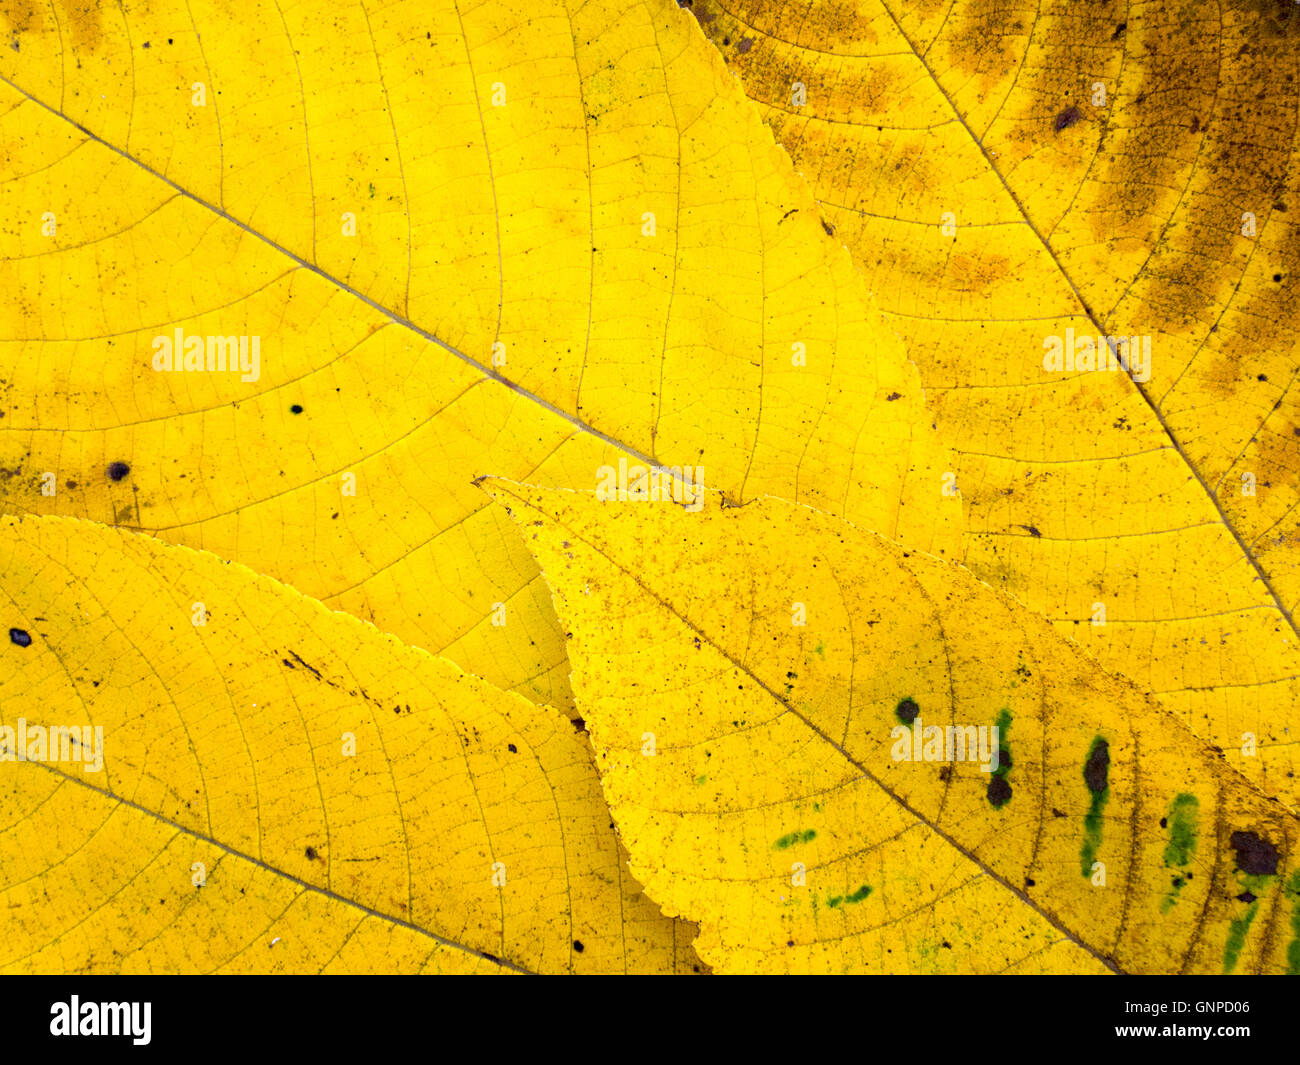 Bright yellow and brown fall leaves with veins background - Stock Image